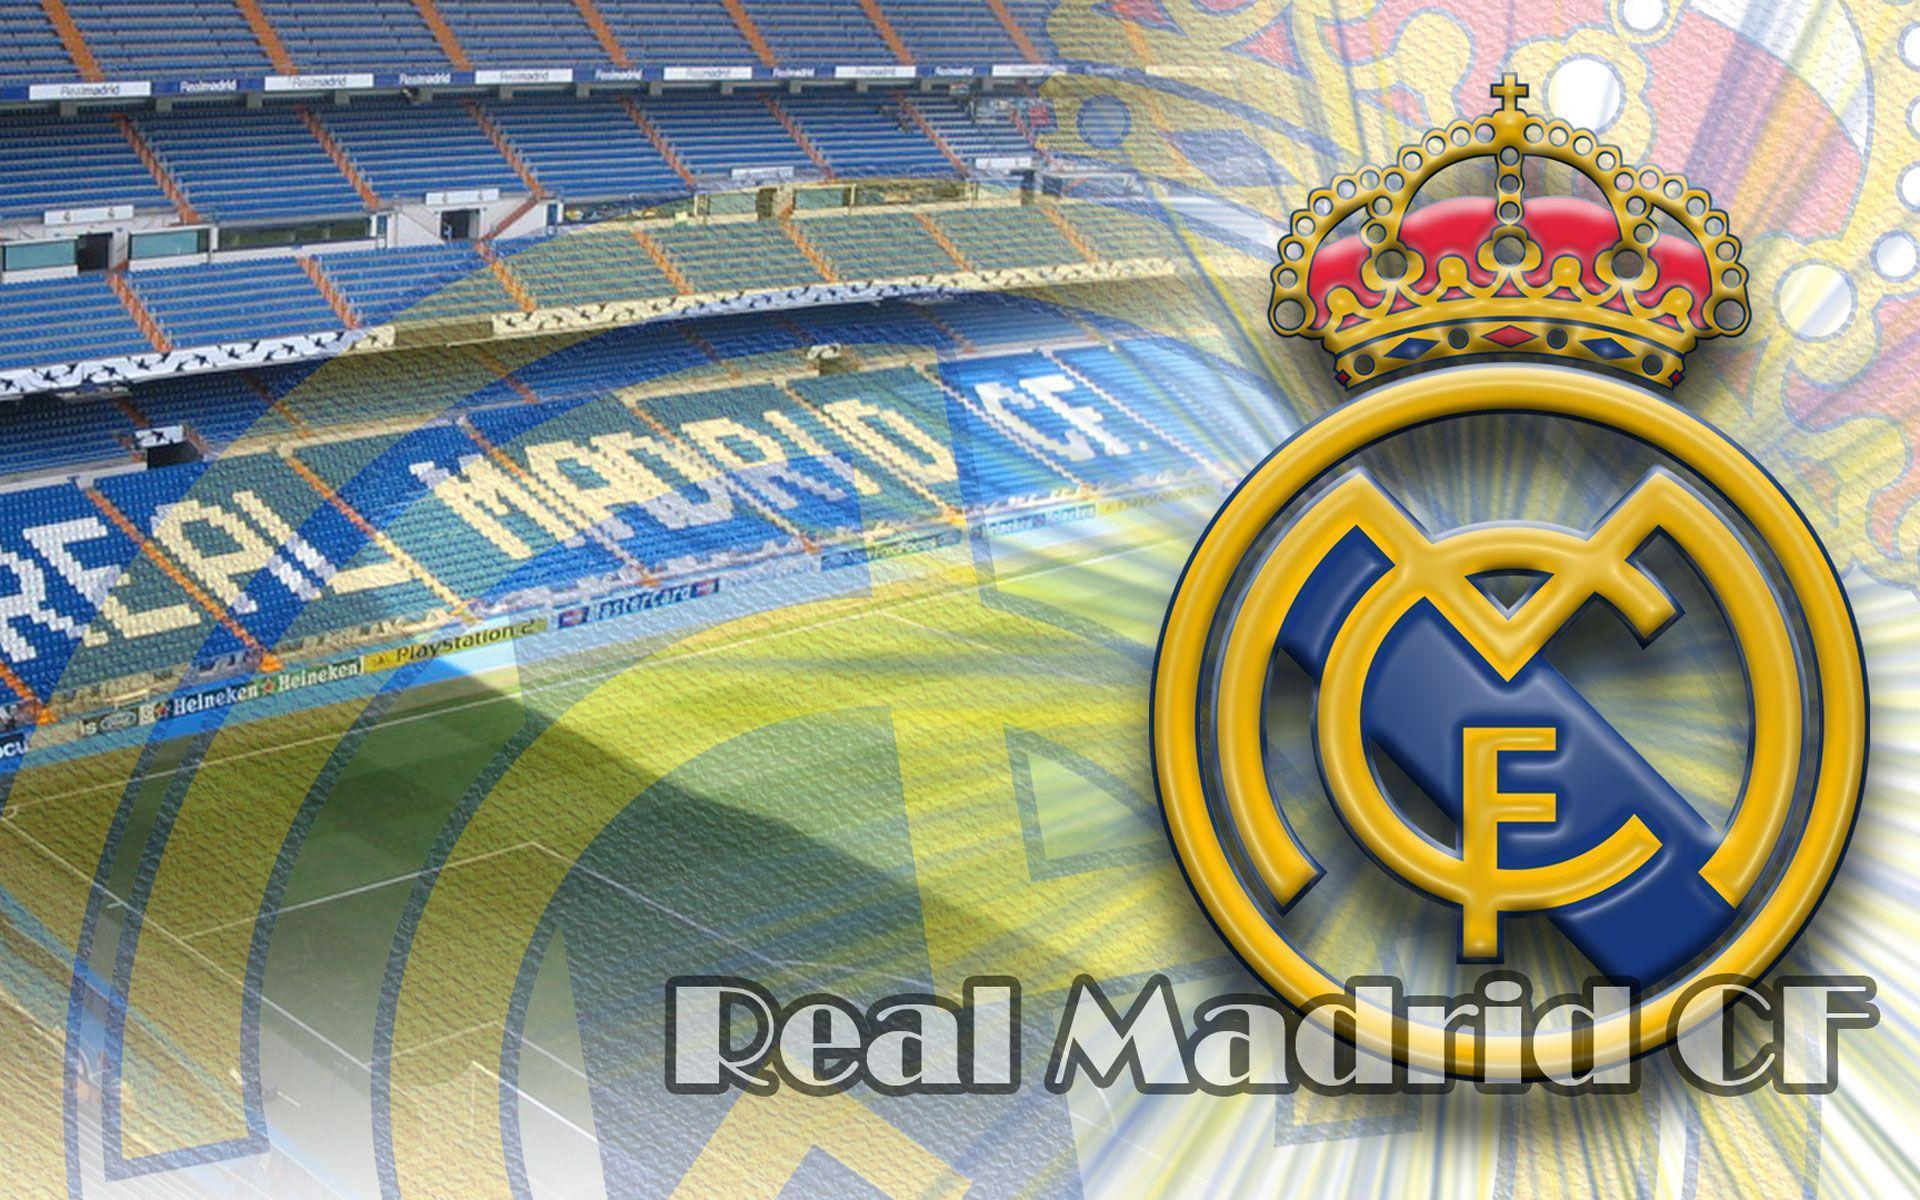 Real Madrid Wallpaper HD free download | HD Wallpapers ...